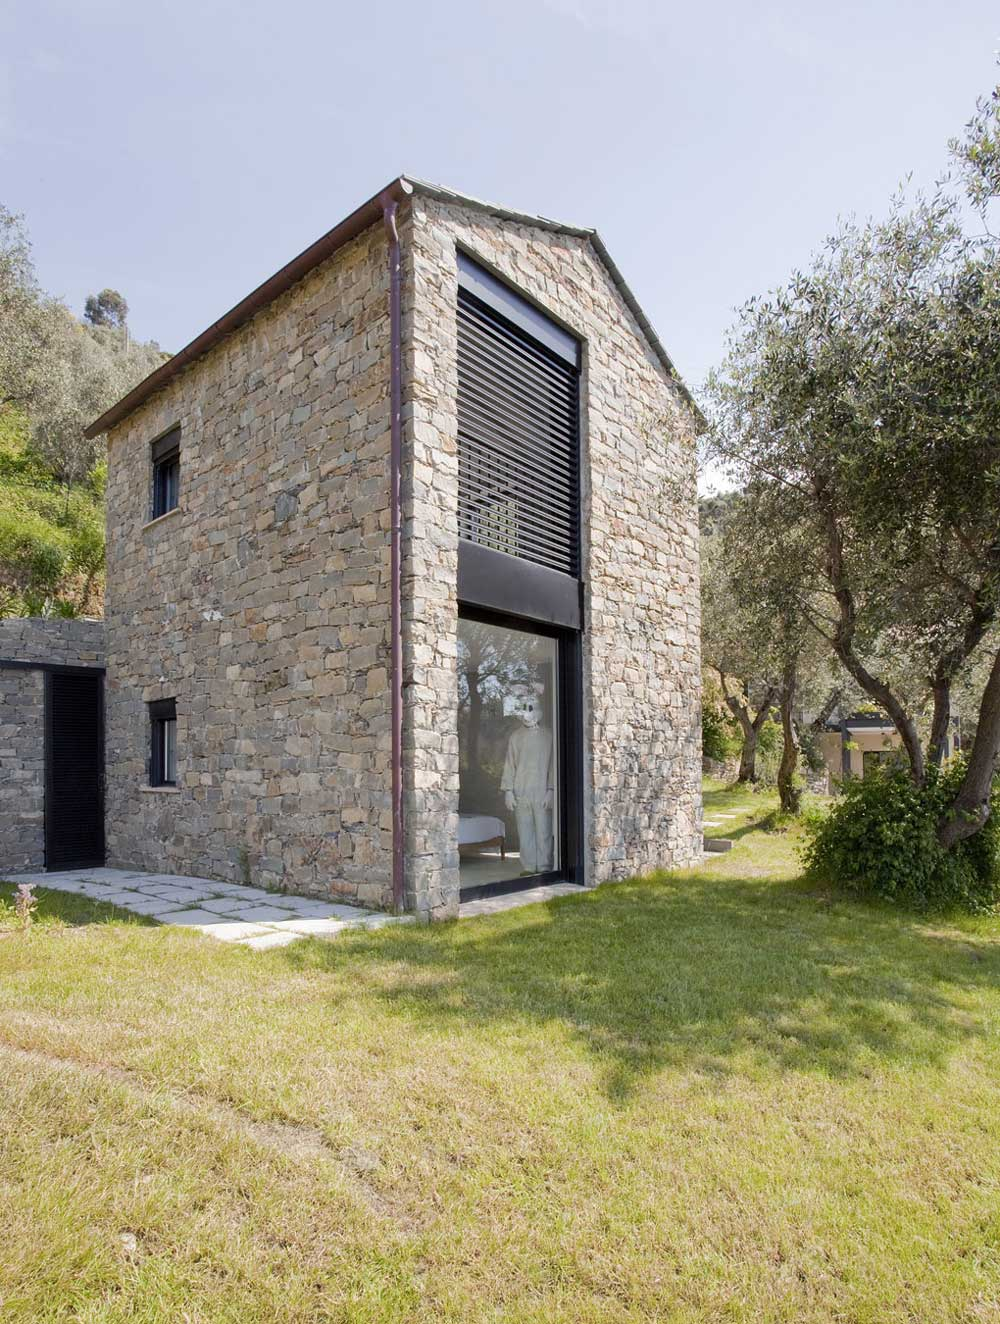 004 farmhouse italy a2bc architects ideasgn for Farmhouse architecture